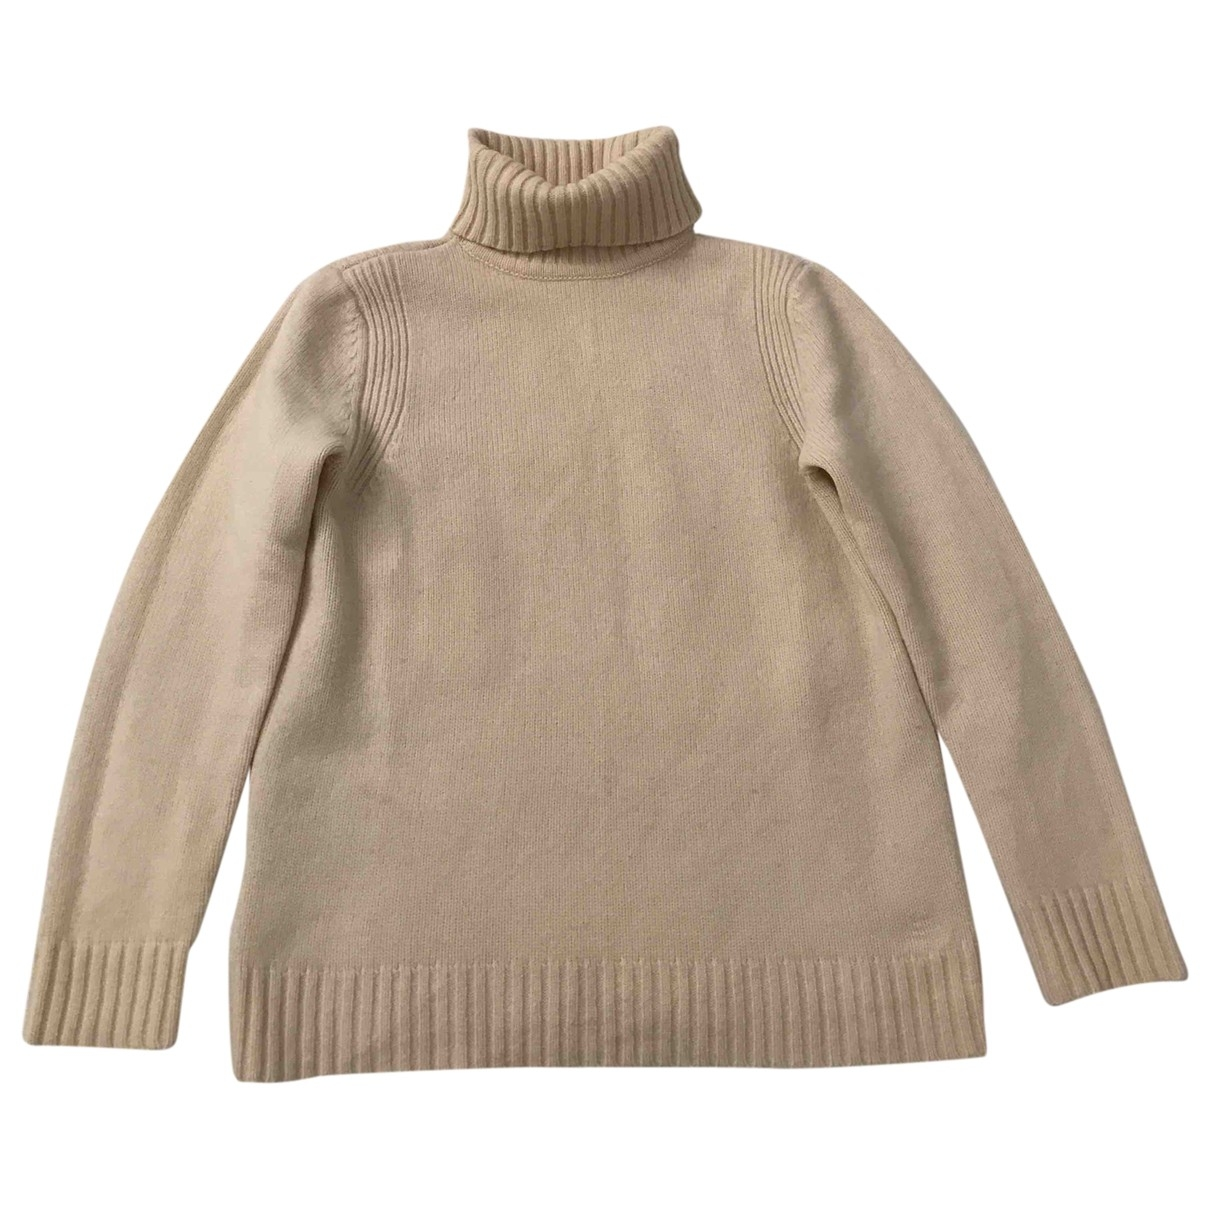 Tommy Hilfiger \N Pullover in  Ecru Wolle